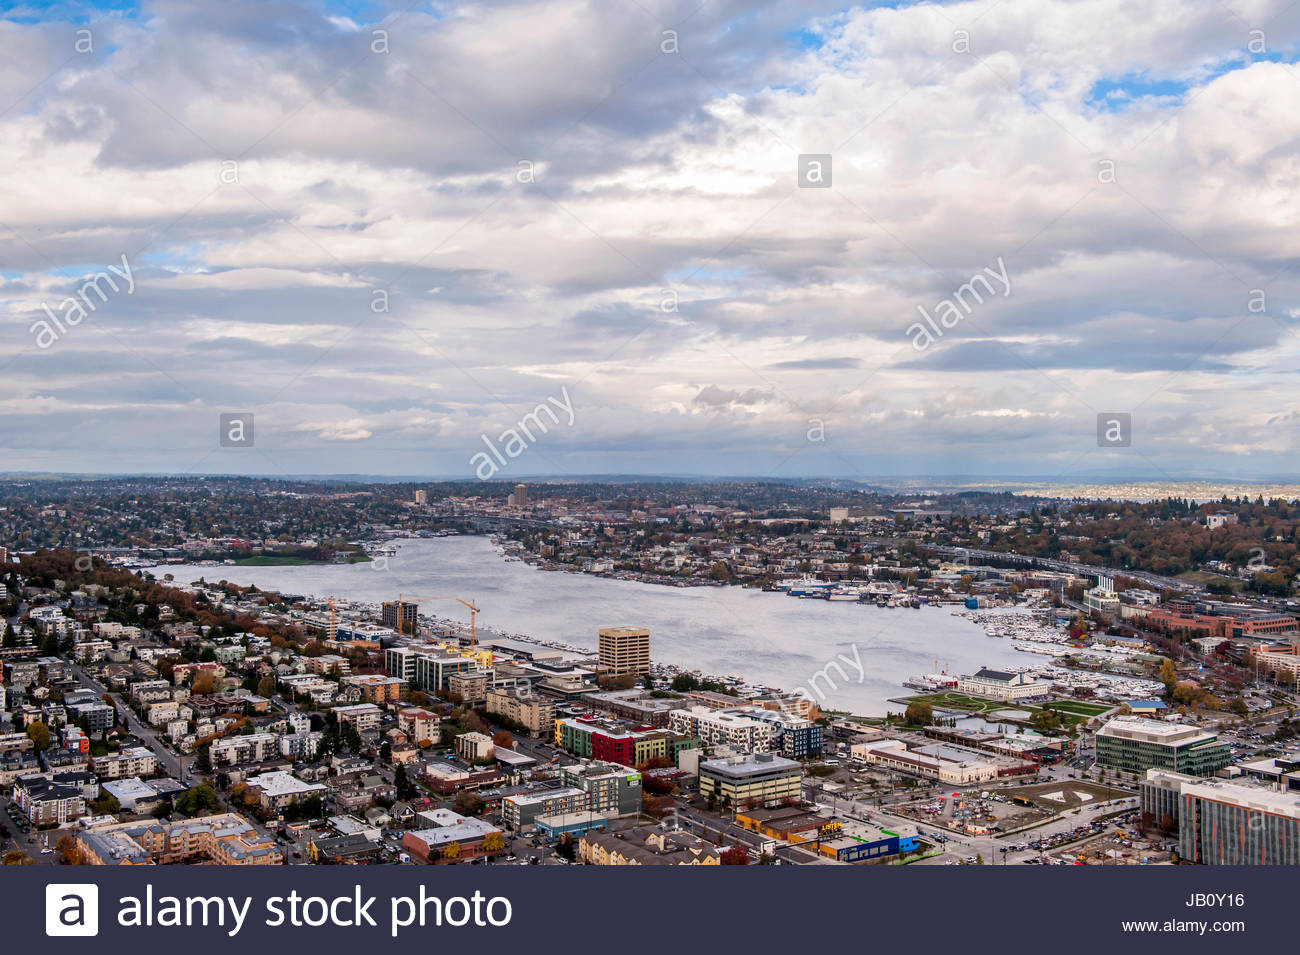 Lake Union seen from the Space Needle. - Stock Image